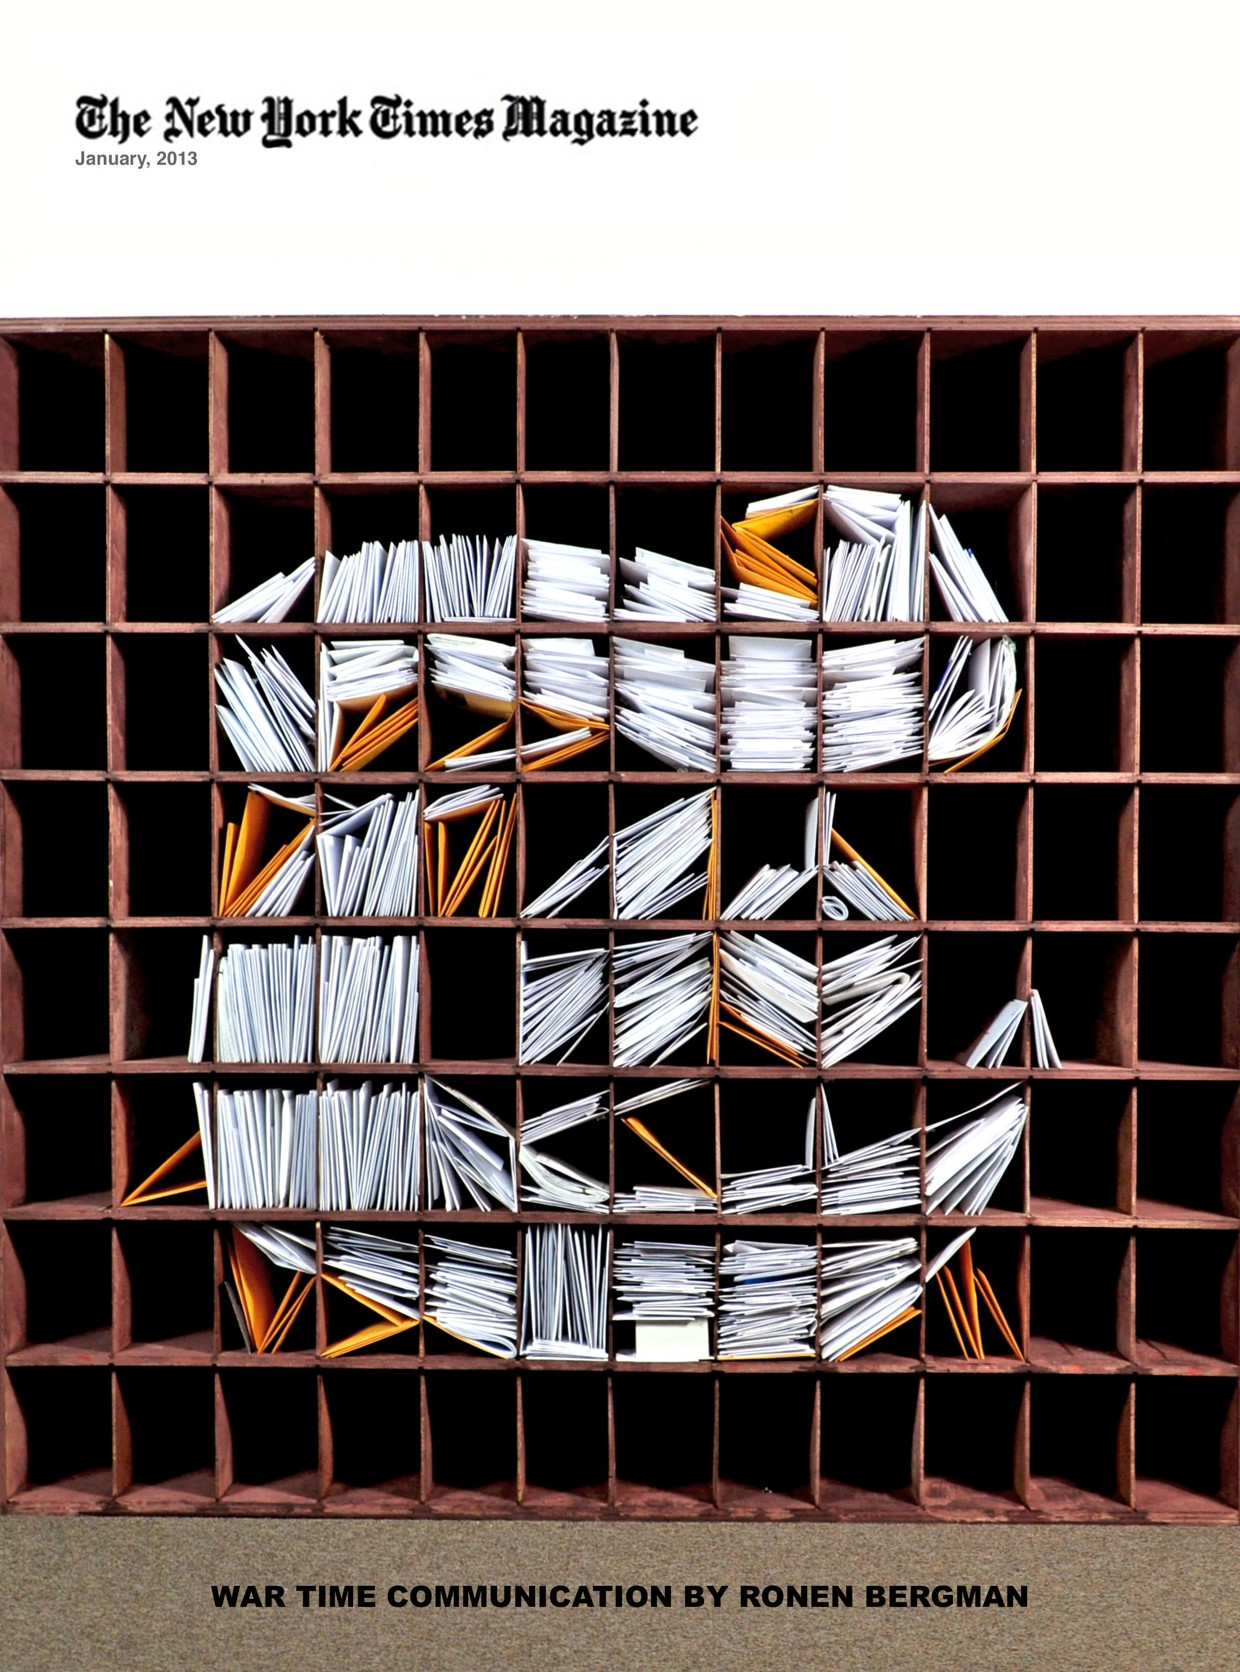 New York Times Logo Recreated With Stacks of Mail ...